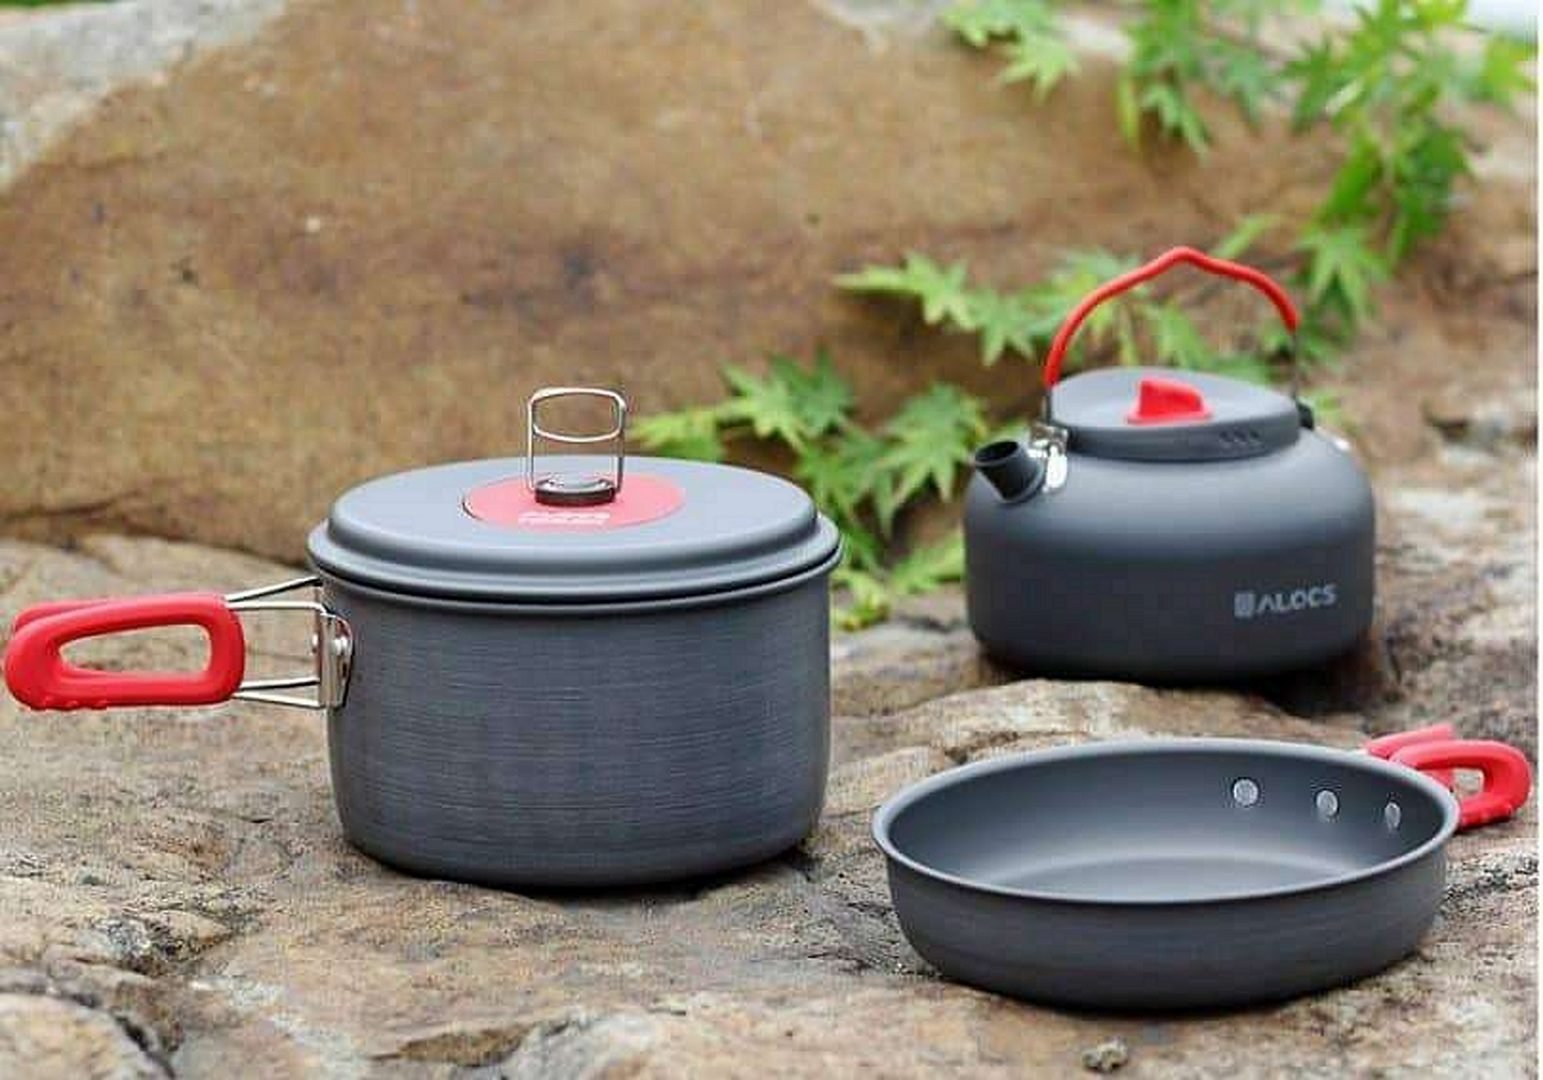 Top 6 Best Camping Cookware